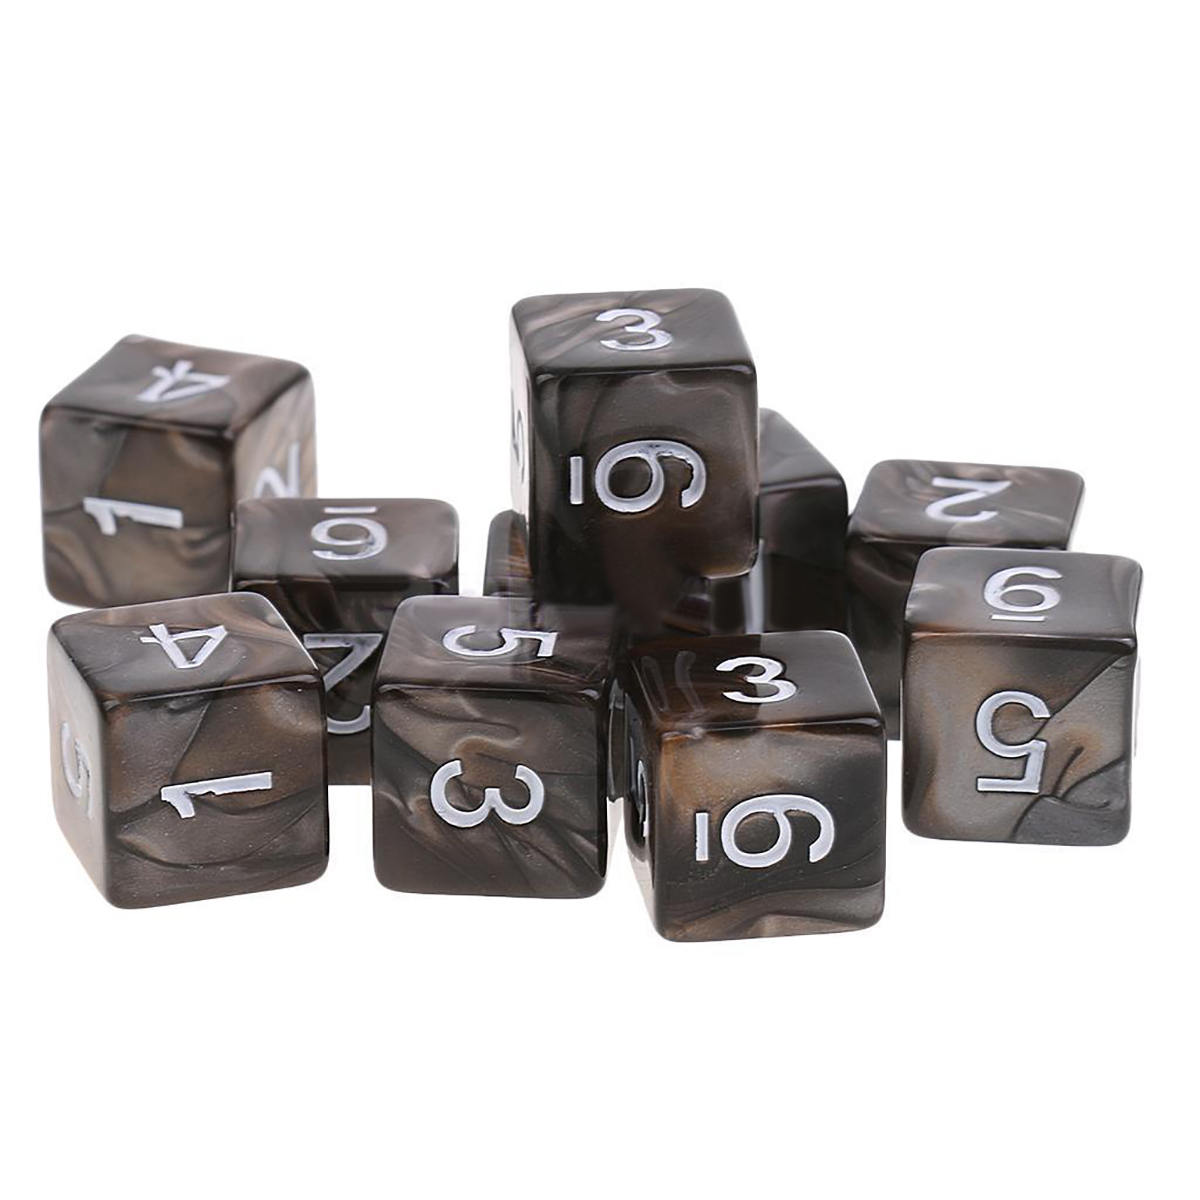 New D6 Sided Dice Set Polyhedral 6 Sides 10PCS Dice For Dungeons And Dragons MTG RPG Desktop Funny Games Outdoor Party Bar Tools